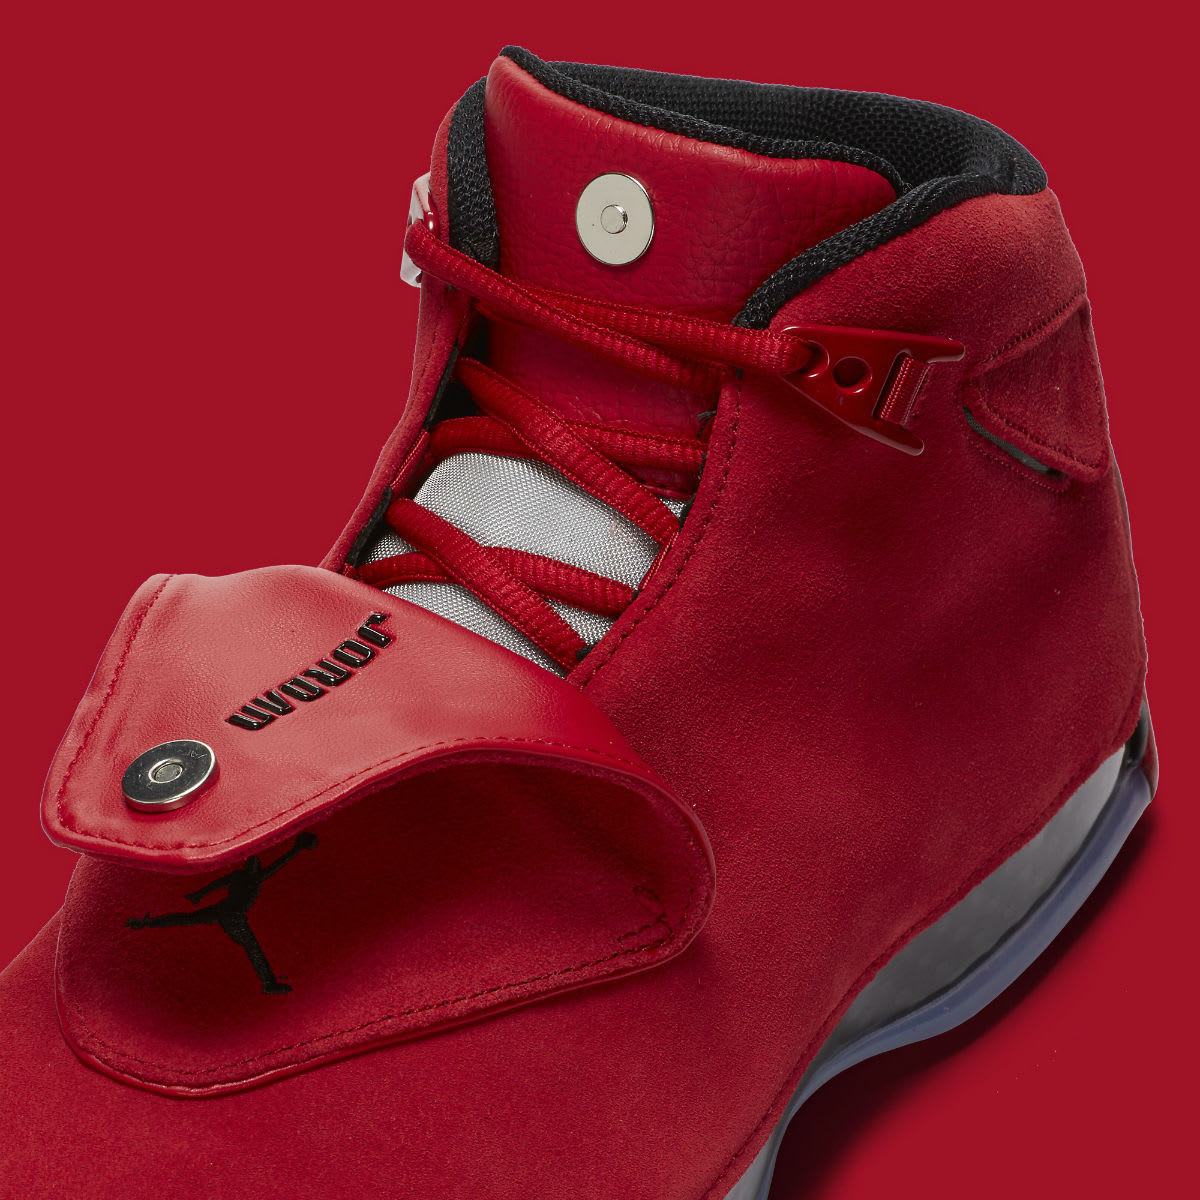 42a933999051 ... shop air jordan 18 xviii toro gym red release date aa2494 601 shroud  18a29 e46c1